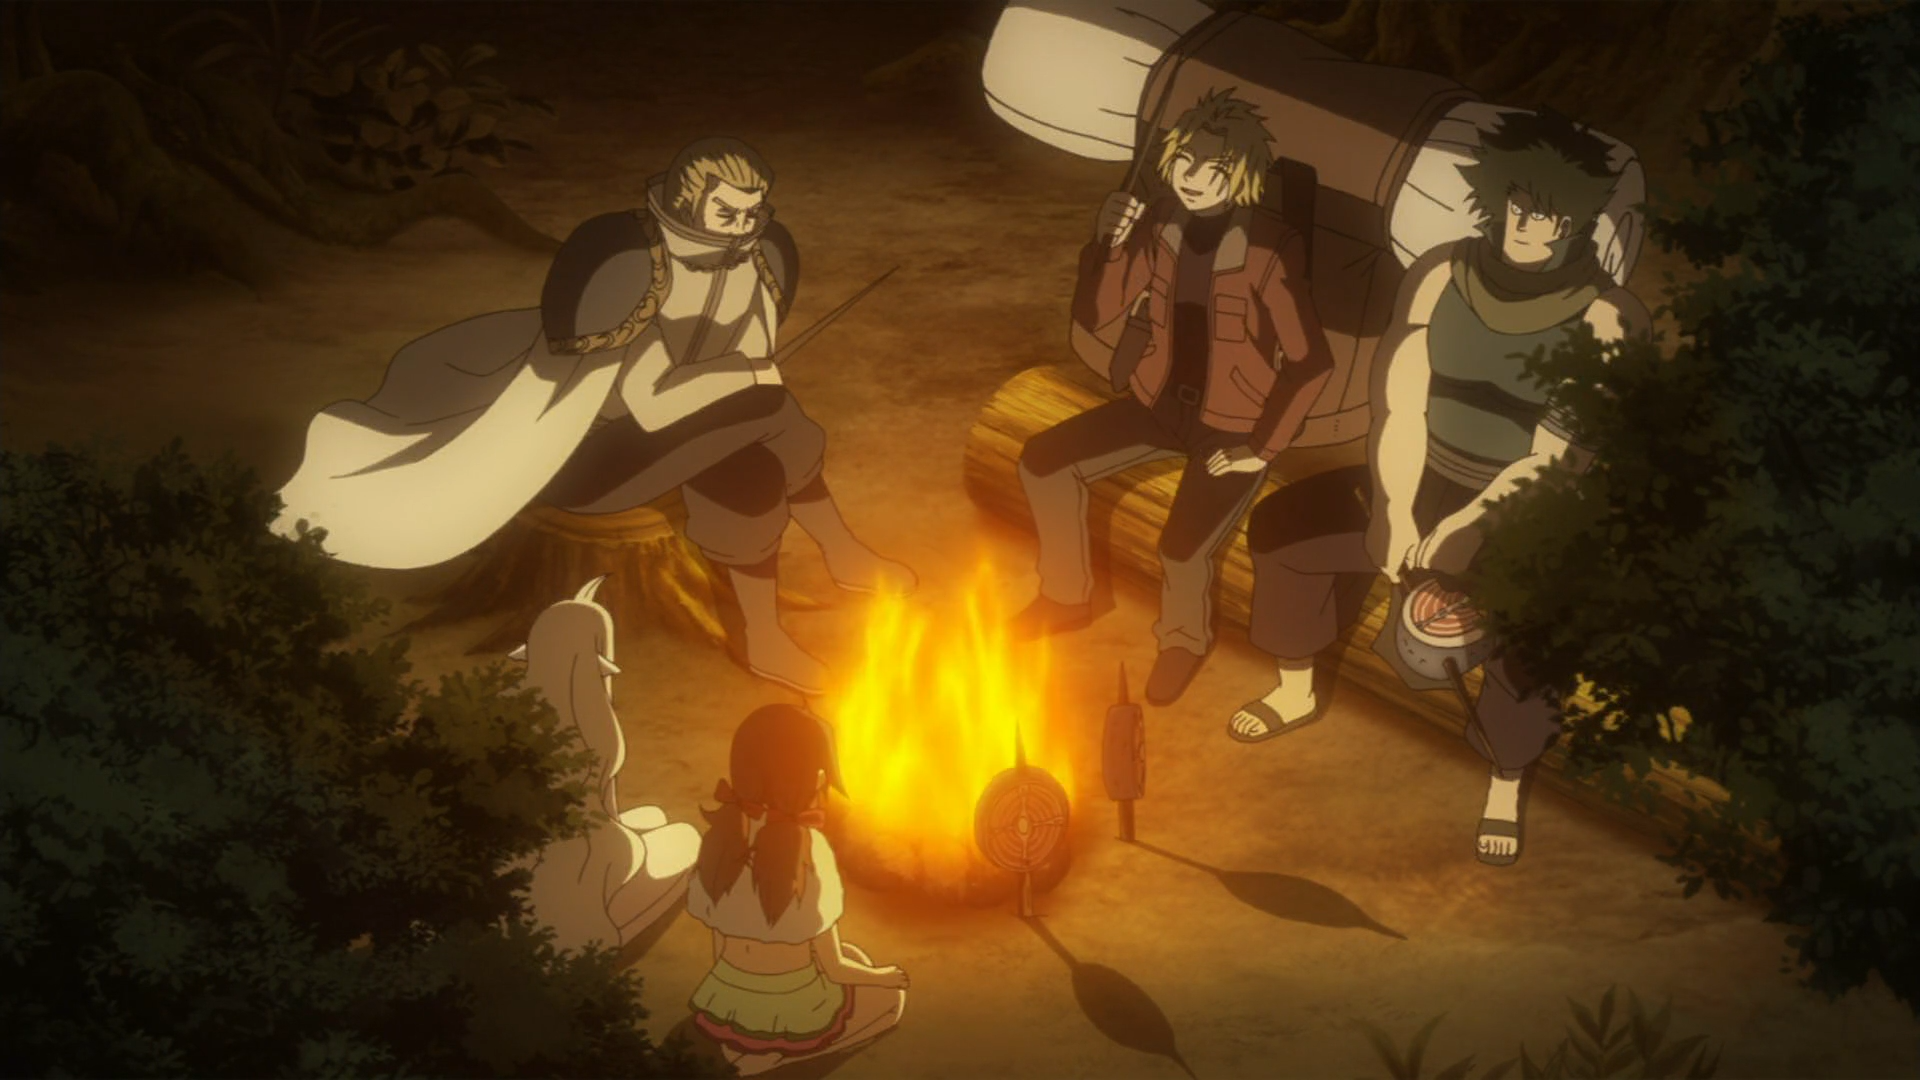 [HorribleSubs] Fairy Tail S2 - 95 [1080p]_001_25199